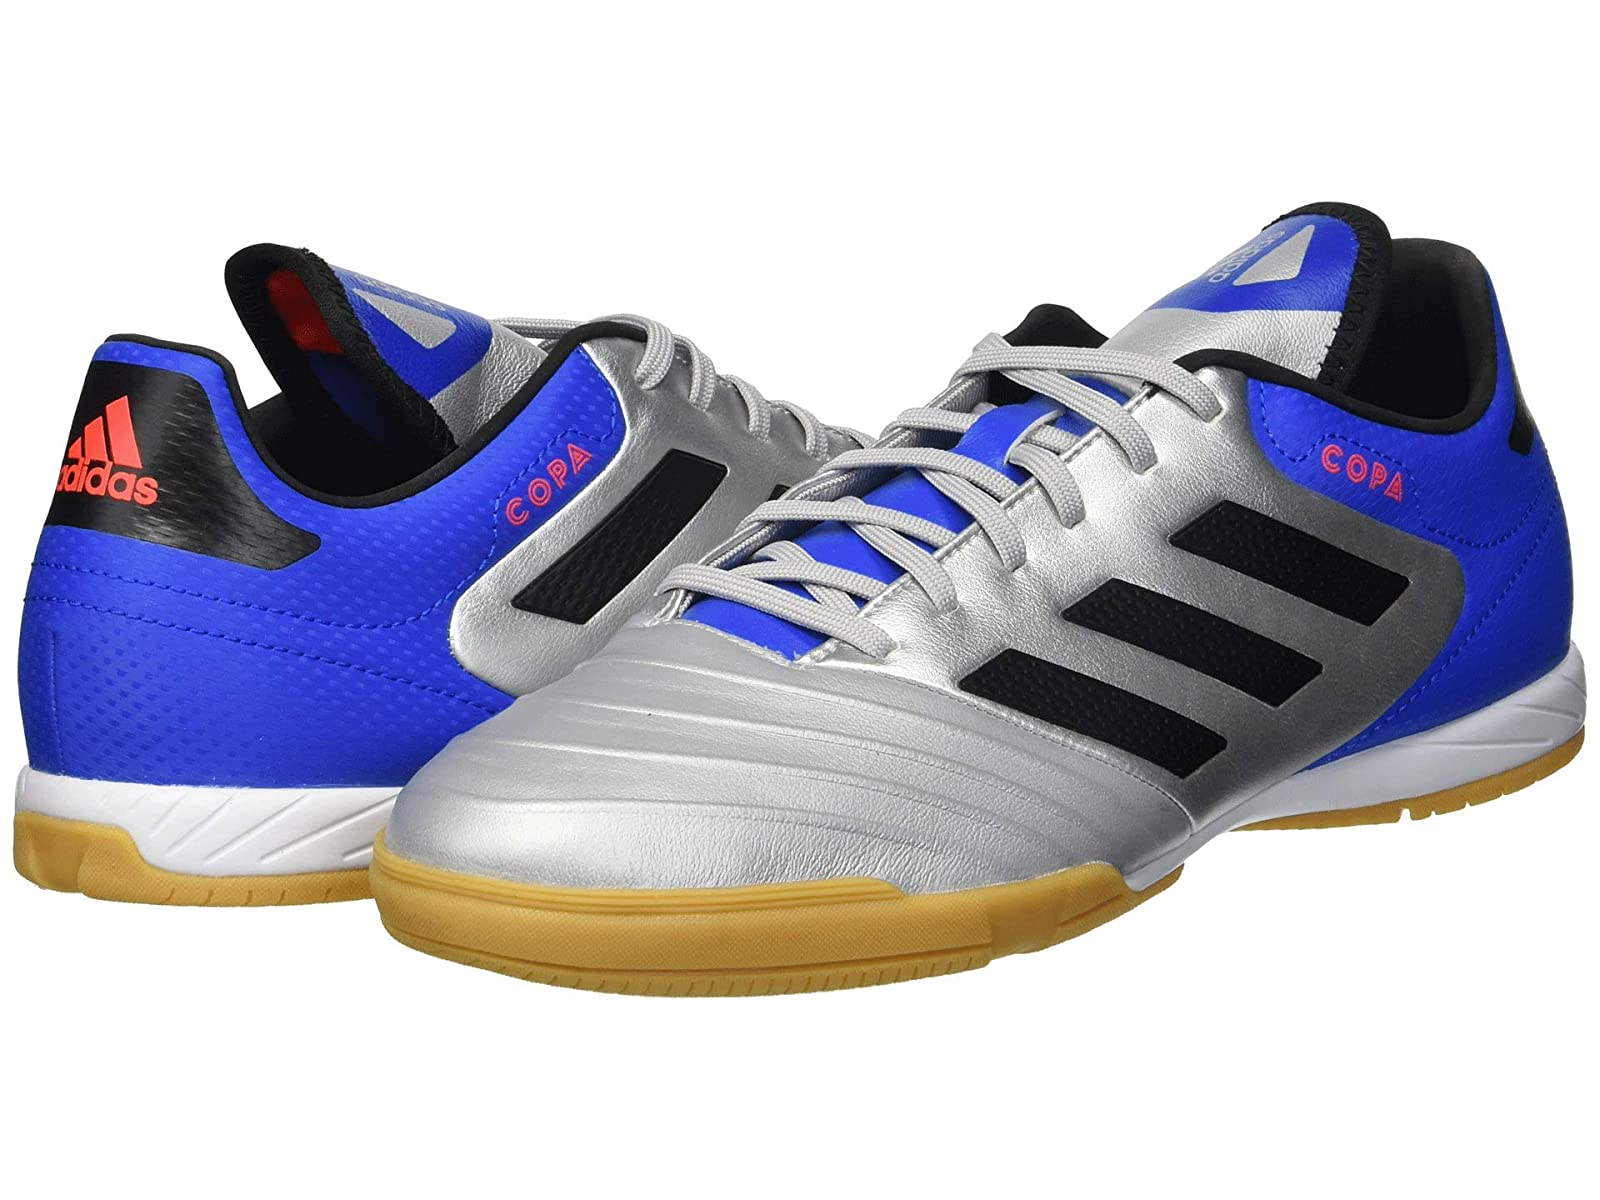 adidas Copa Tango 18.3 INAtmospheric grades have affordable shoes